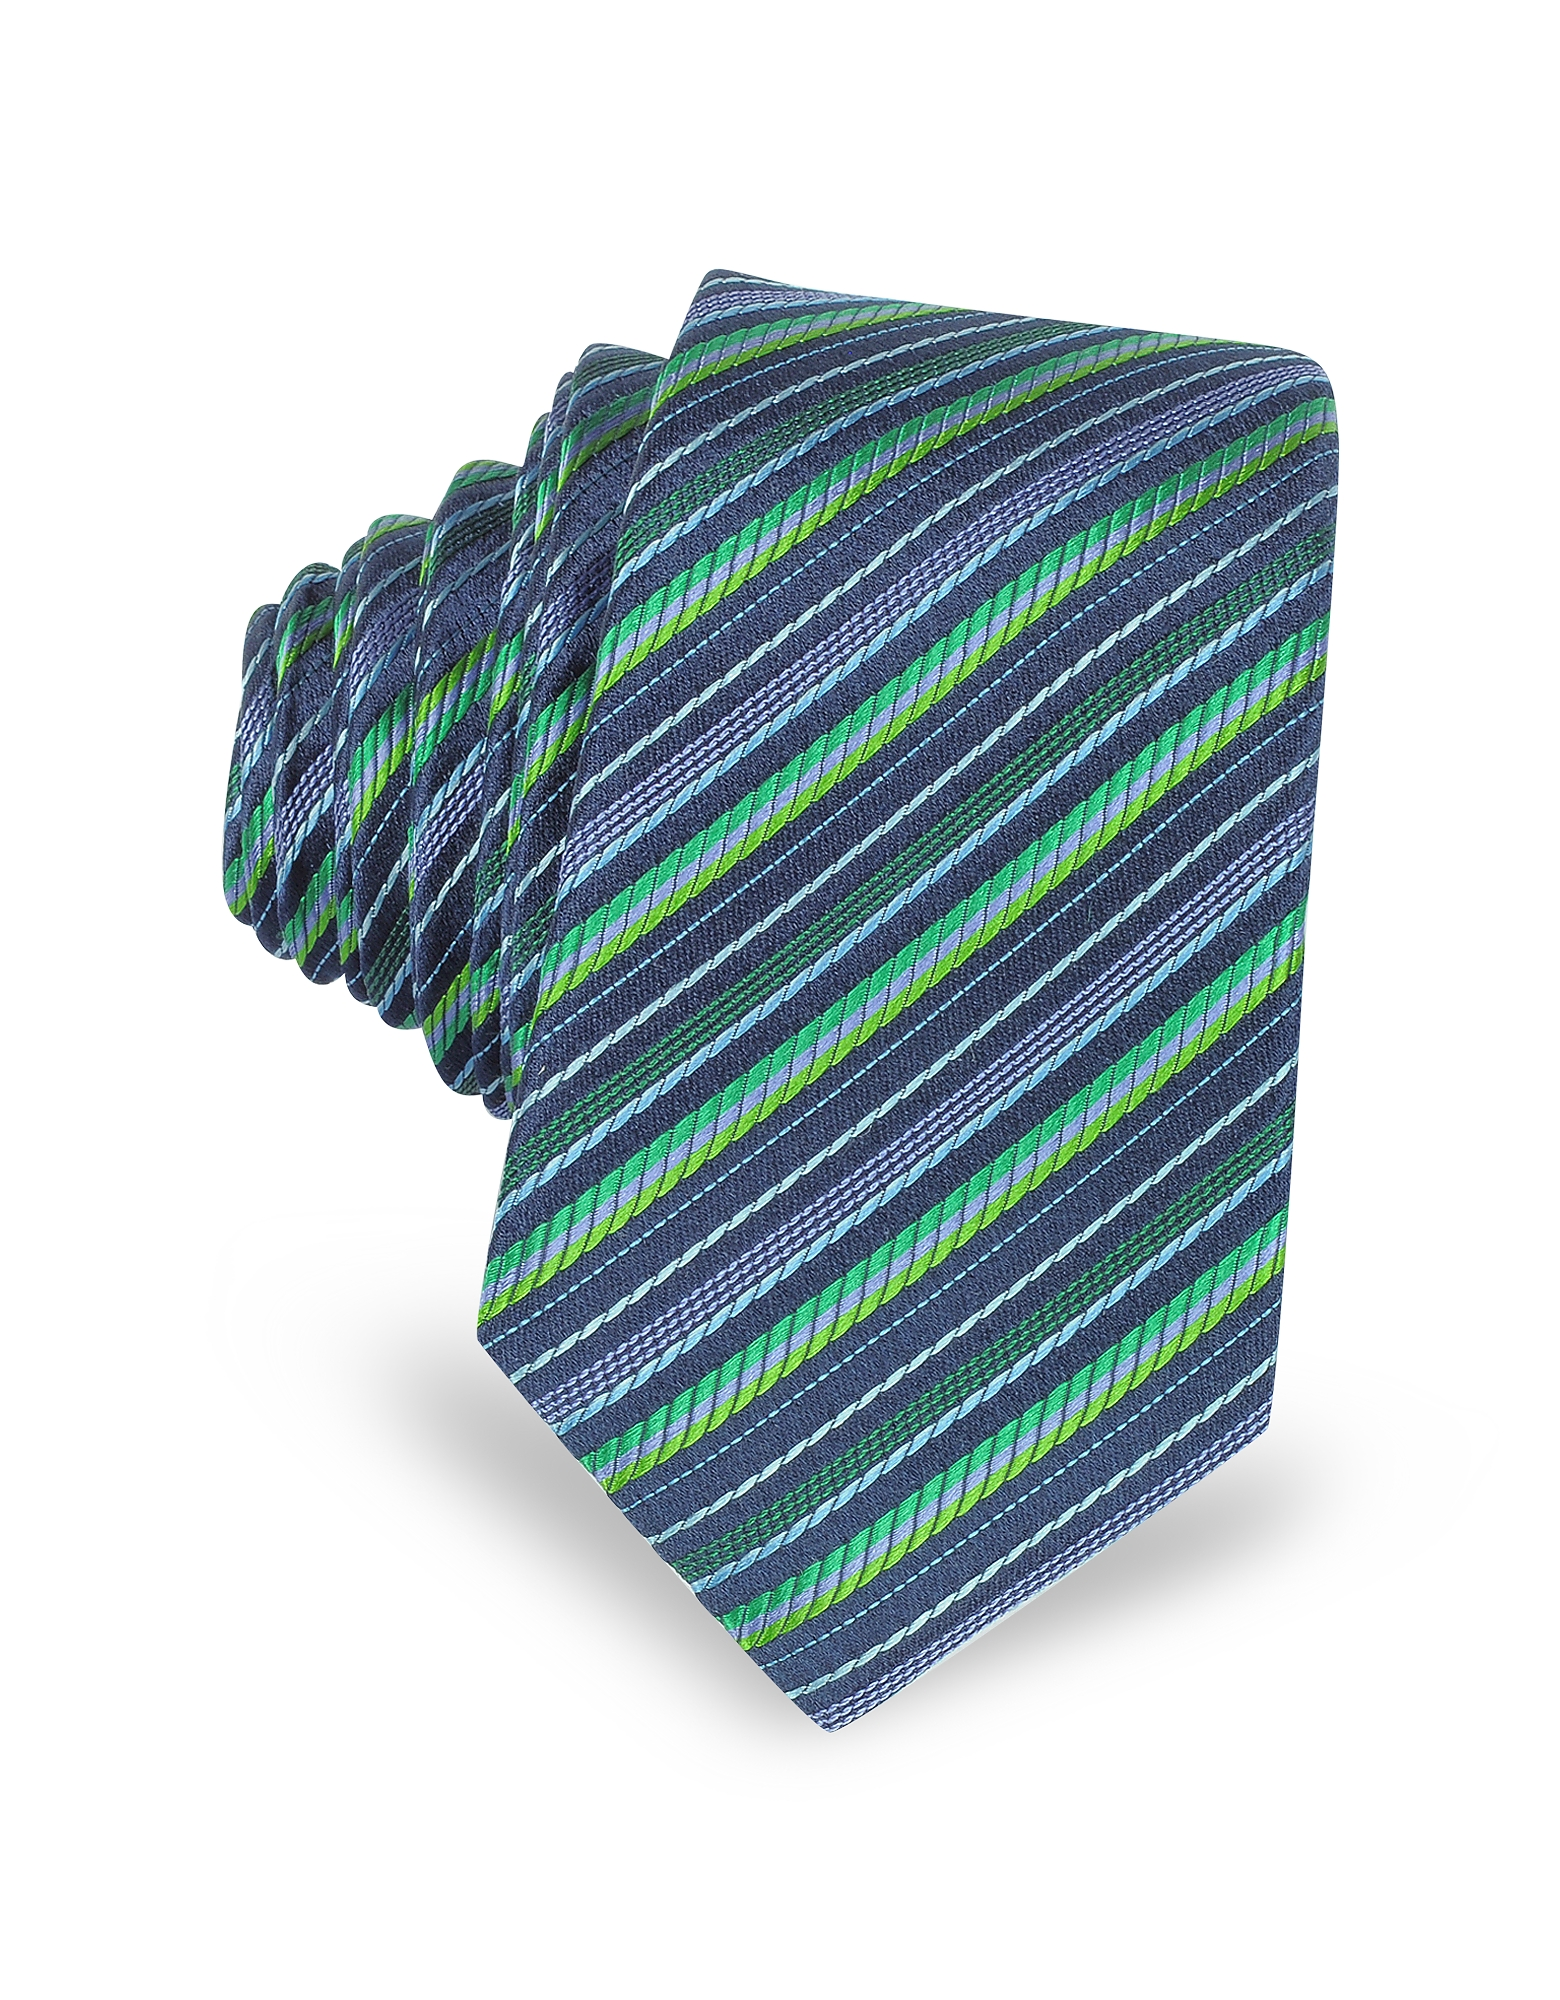 Navy Blue and Green Diagonal Stripe Woven Silk Extra-Narrow Tie